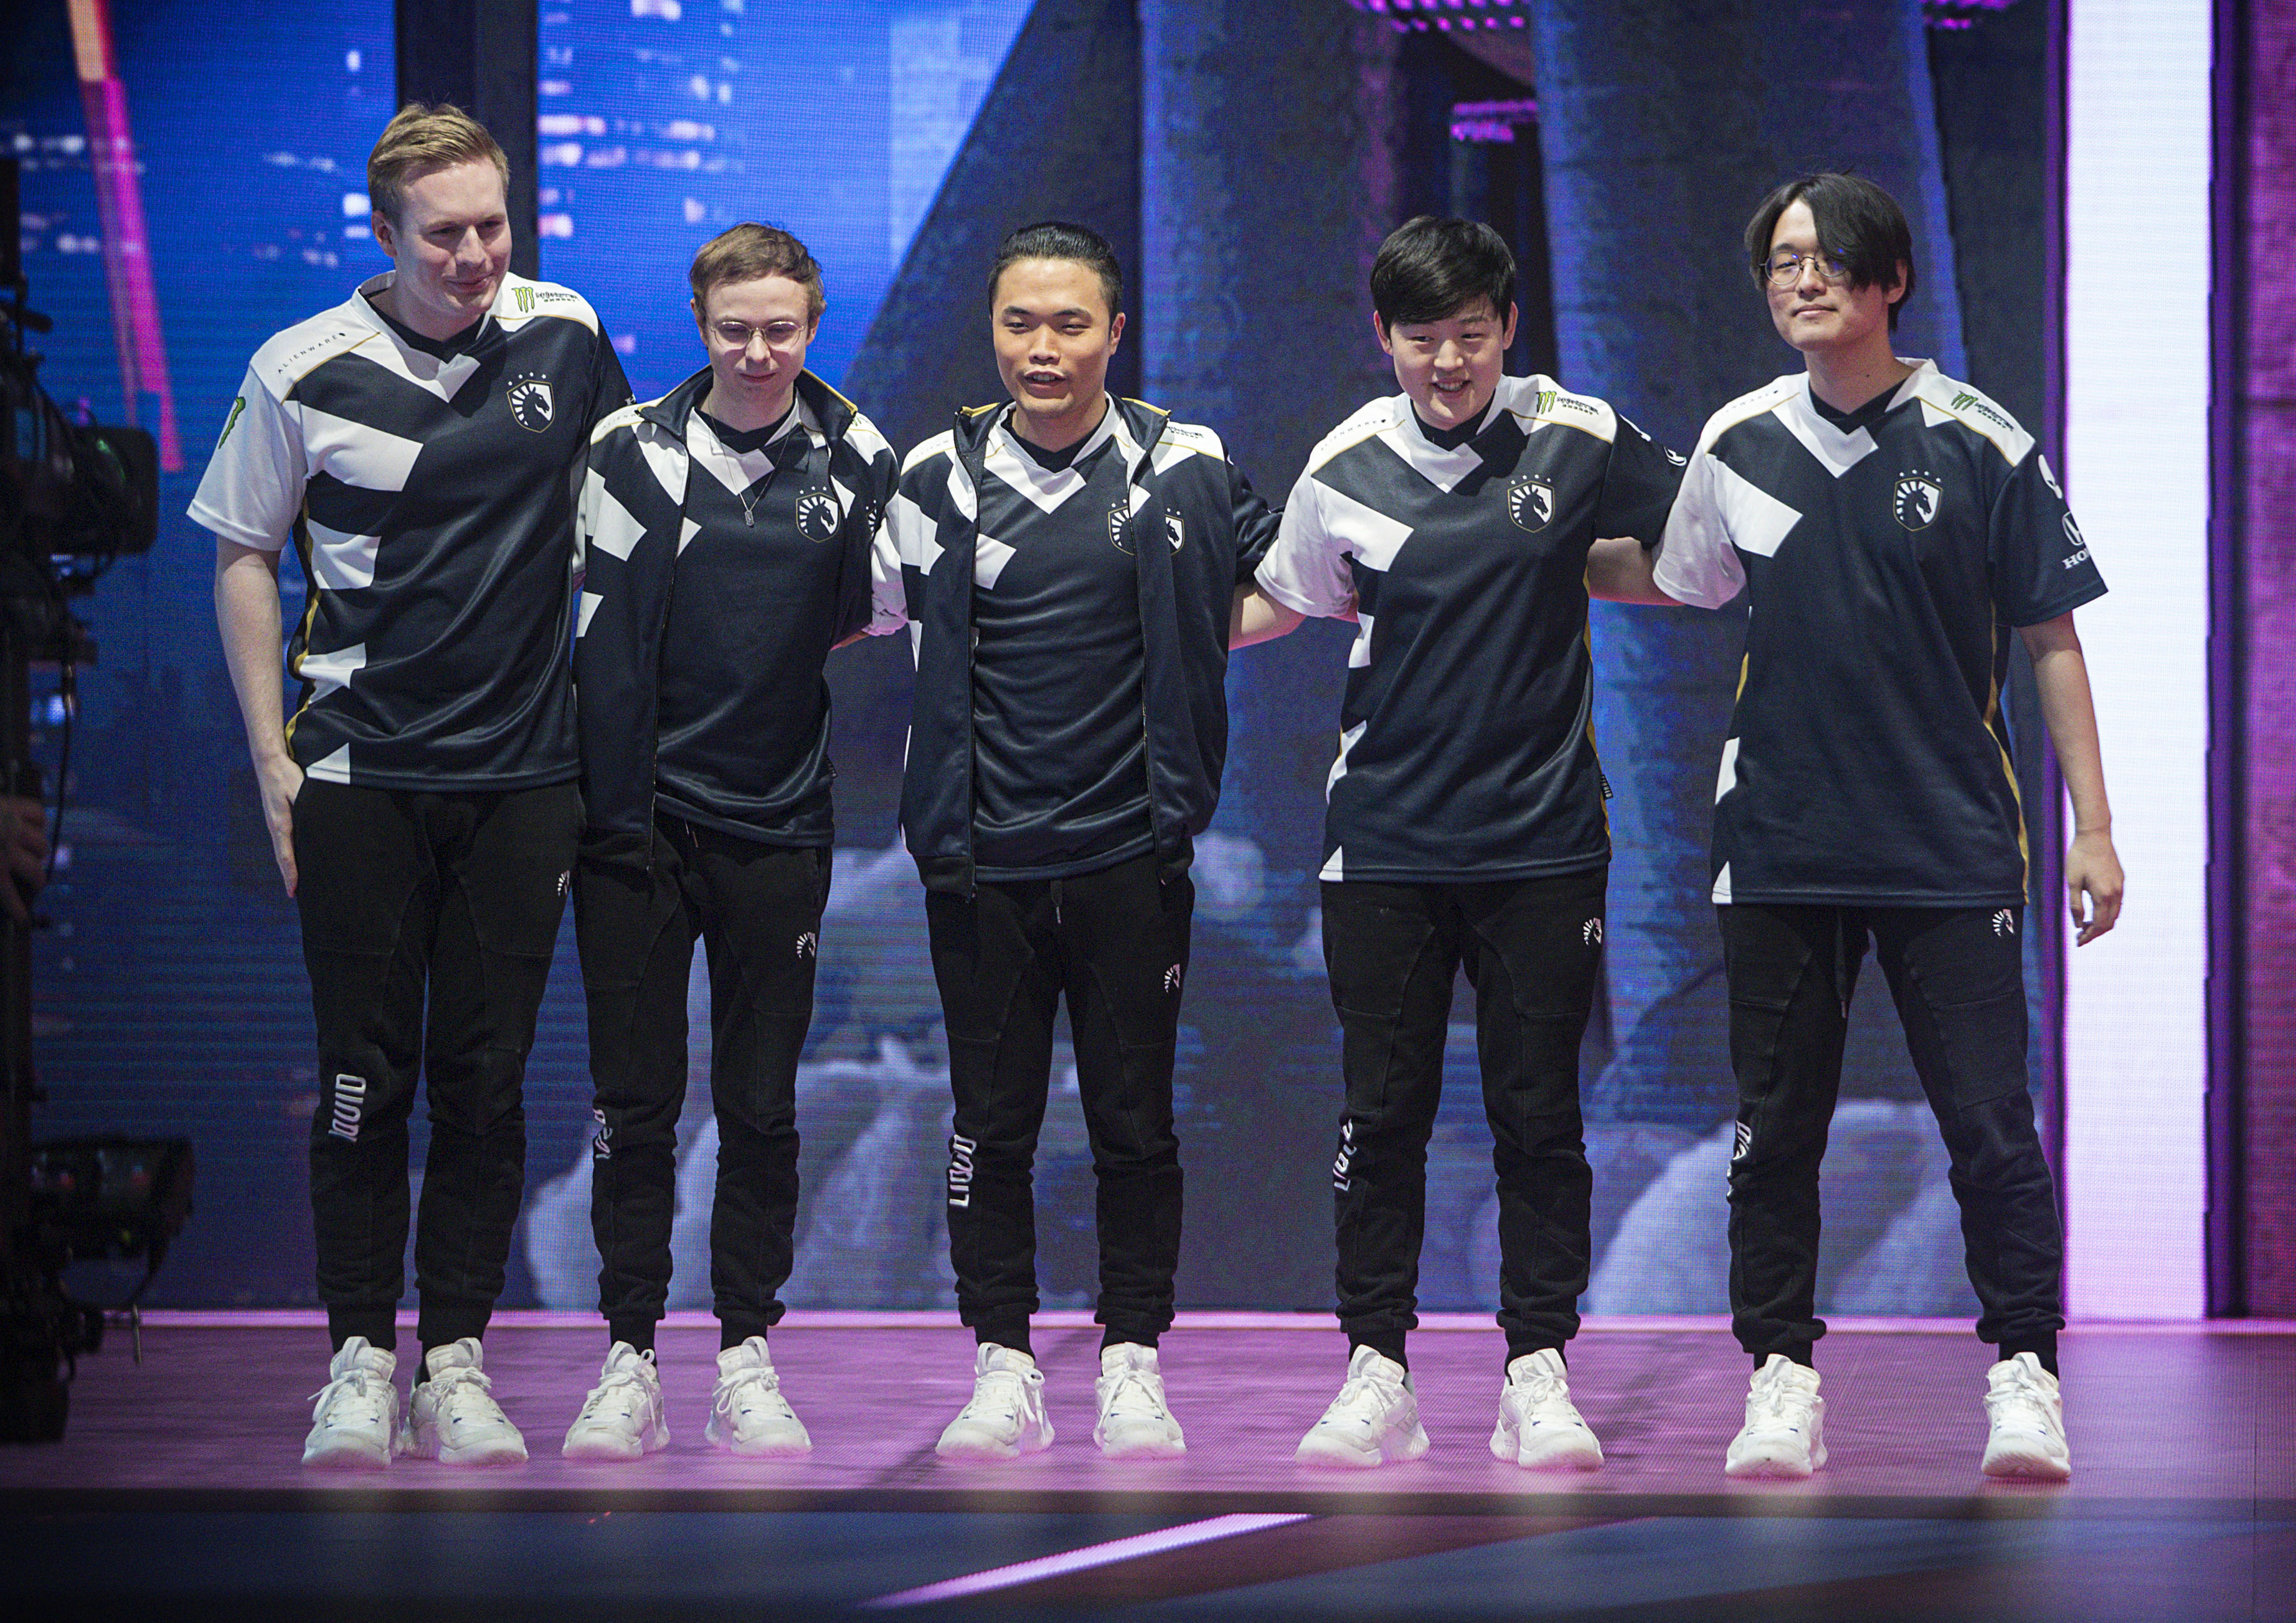 League of Legends – 2020 Worlds: Opening Day